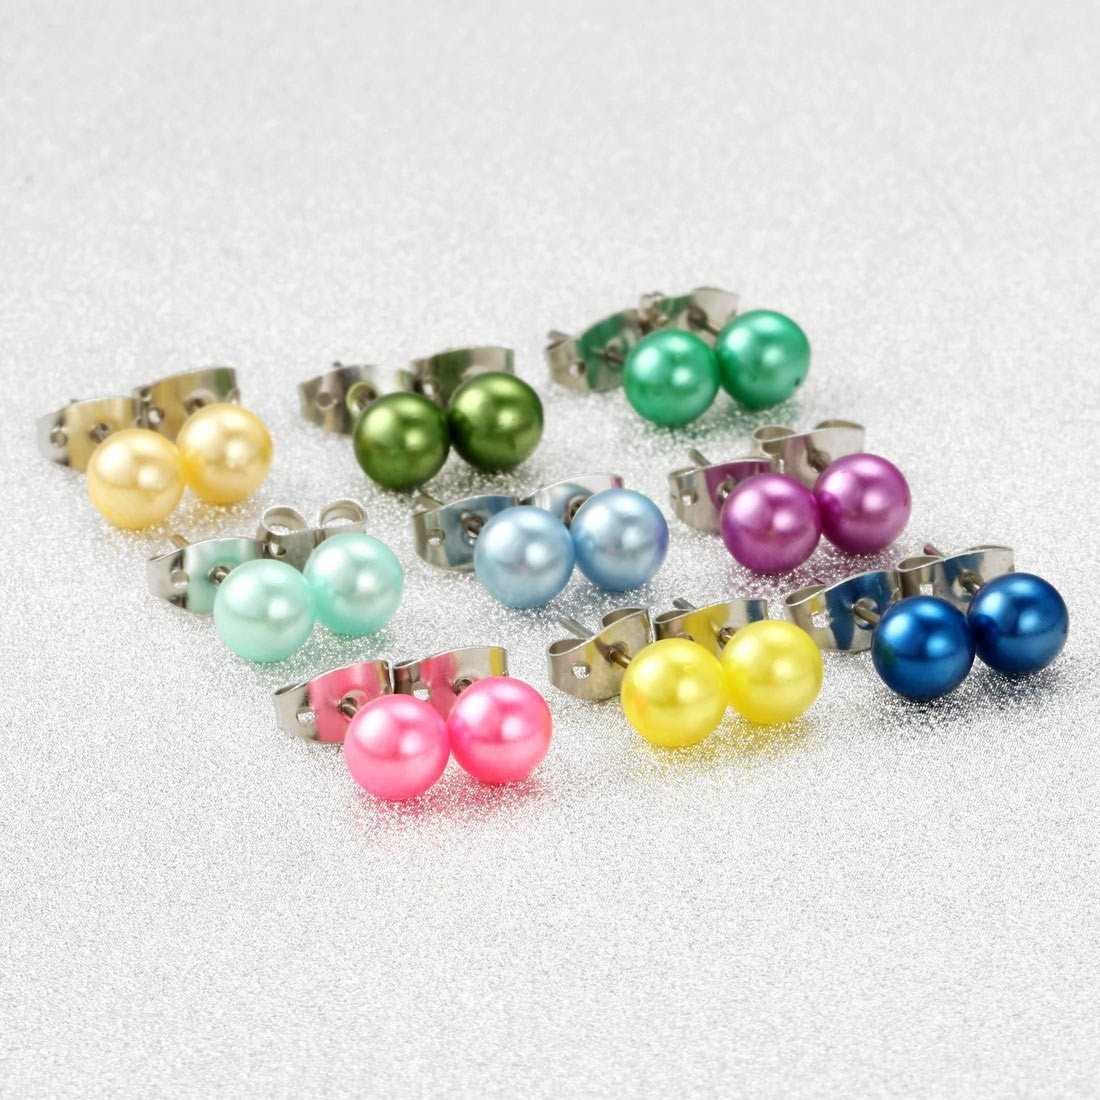 36pair/lot Natural Real Freshwater Pearl Stud Earrings Women Bridal Jewelry Lovely 7-7.5mm Baroque Multicolor Pearl Stud Earring